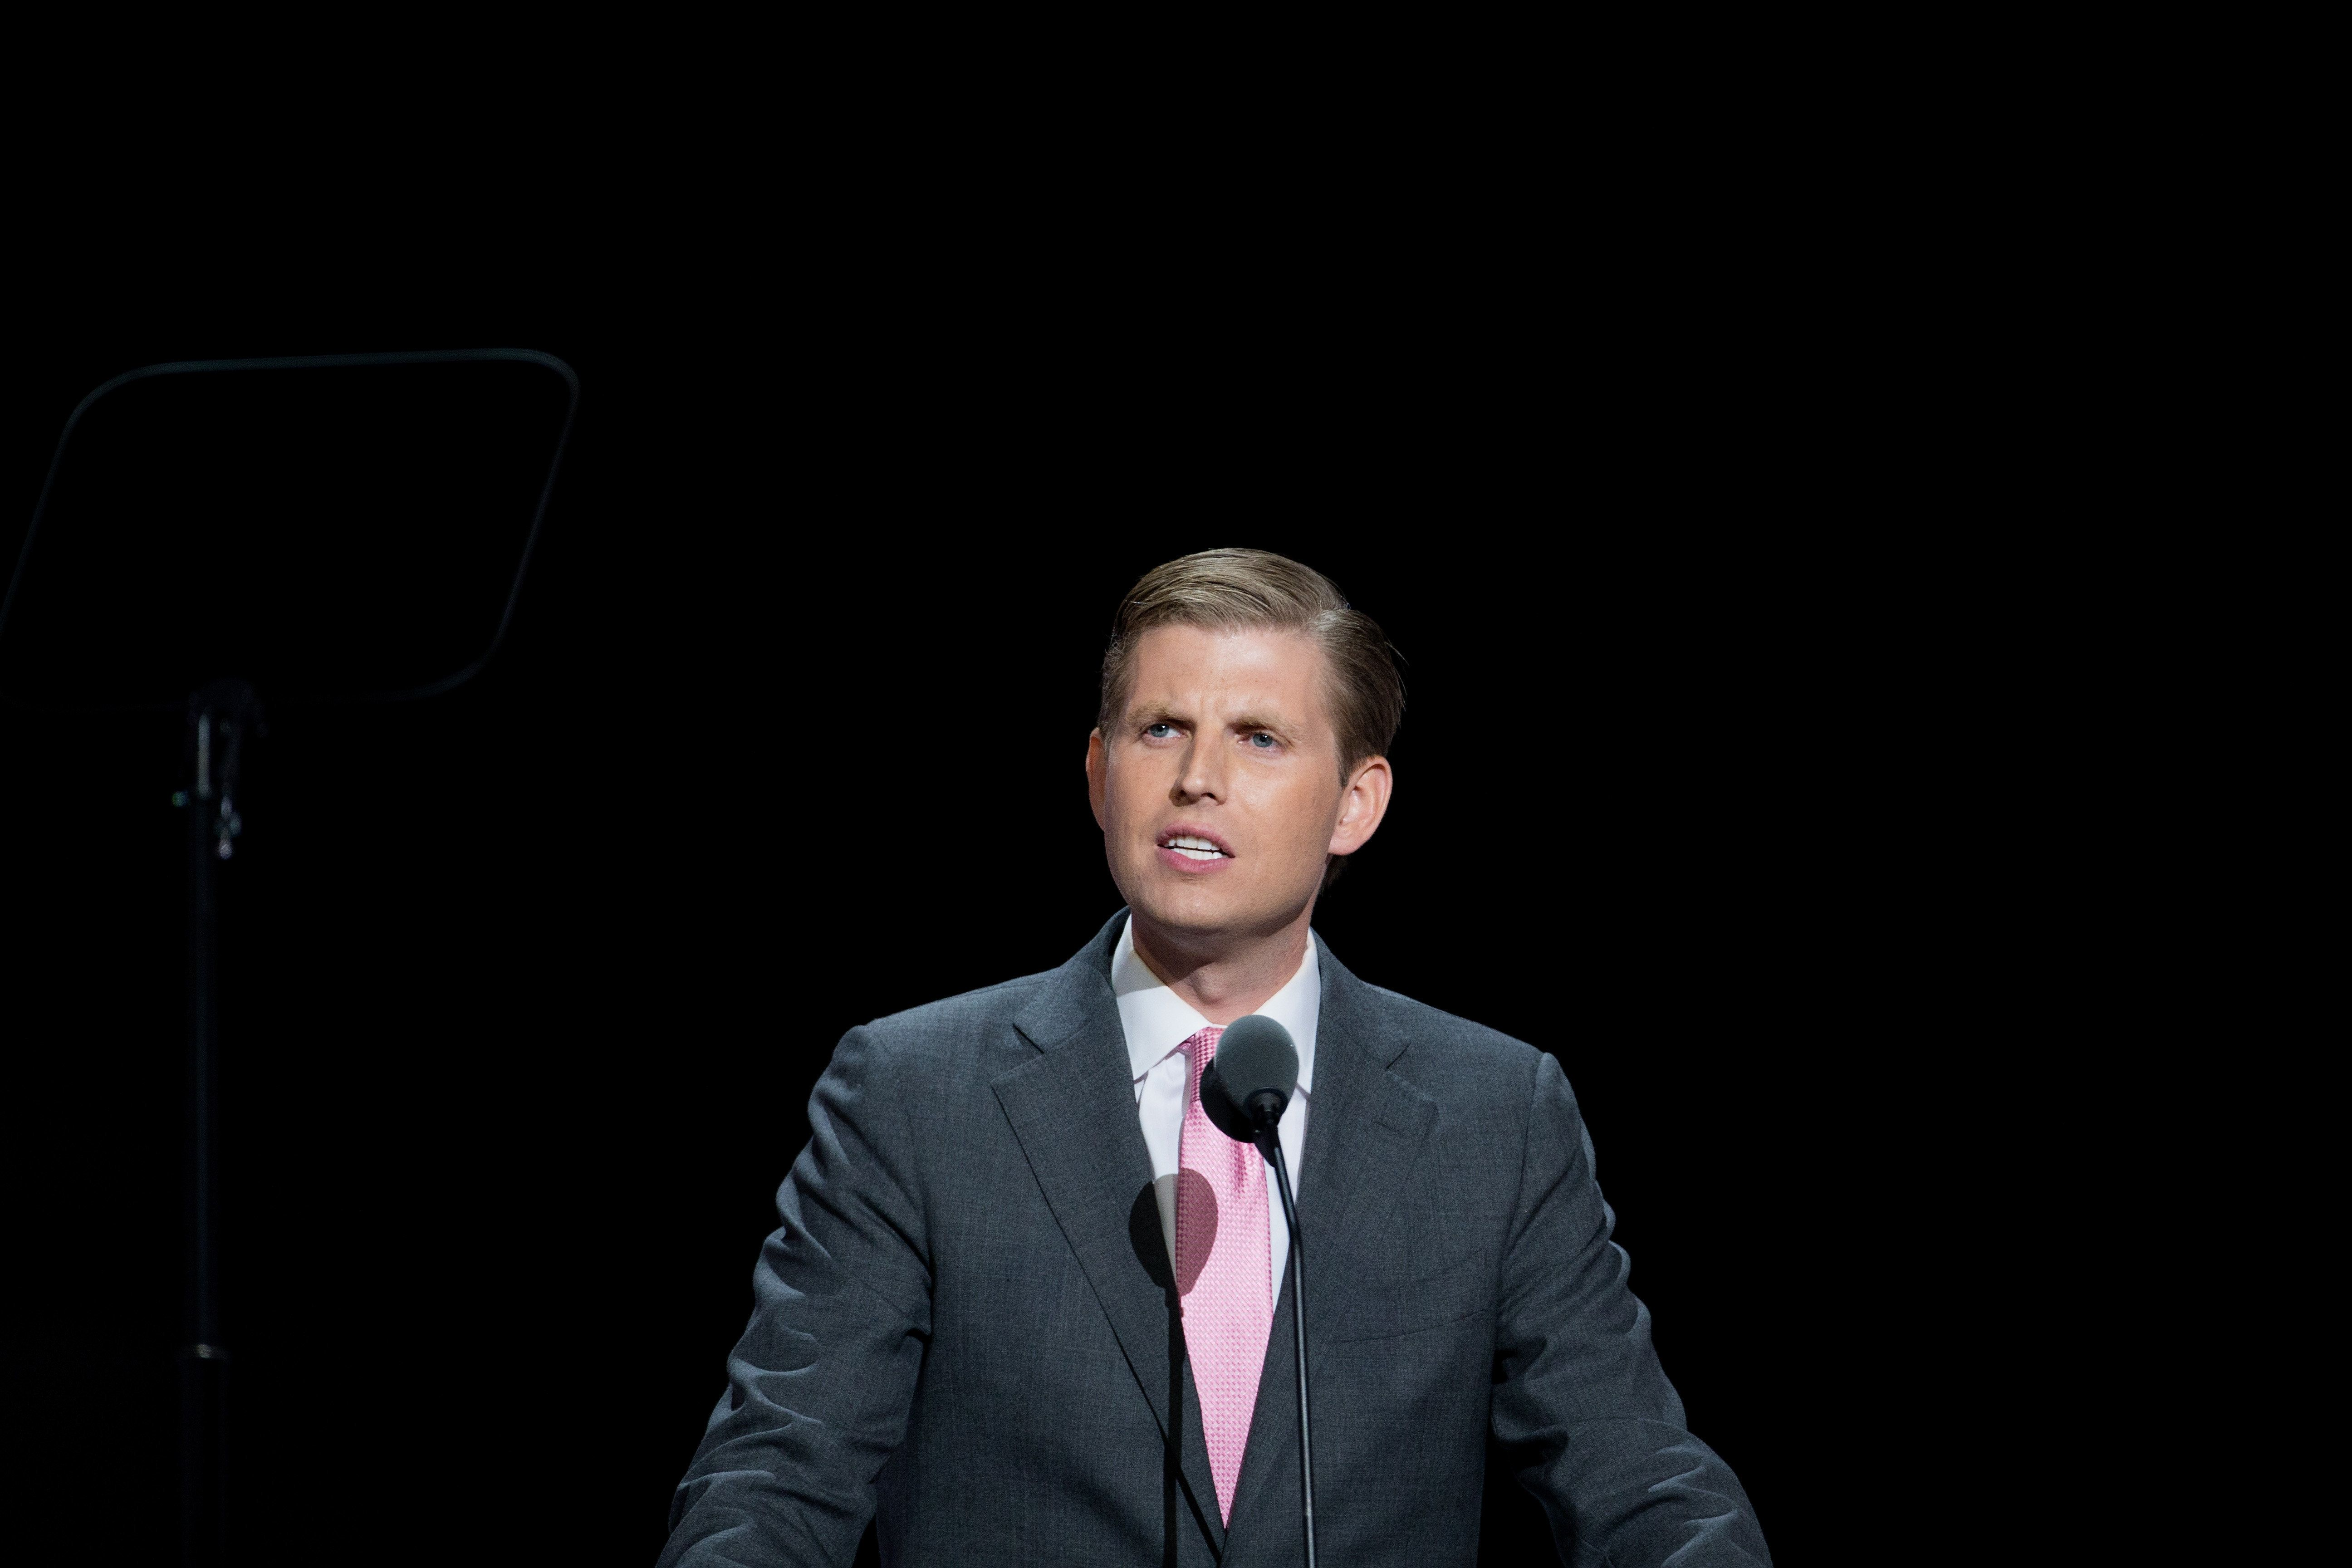 """Eric Trump thinkshis father is the """"epitome of the American dream."""""""